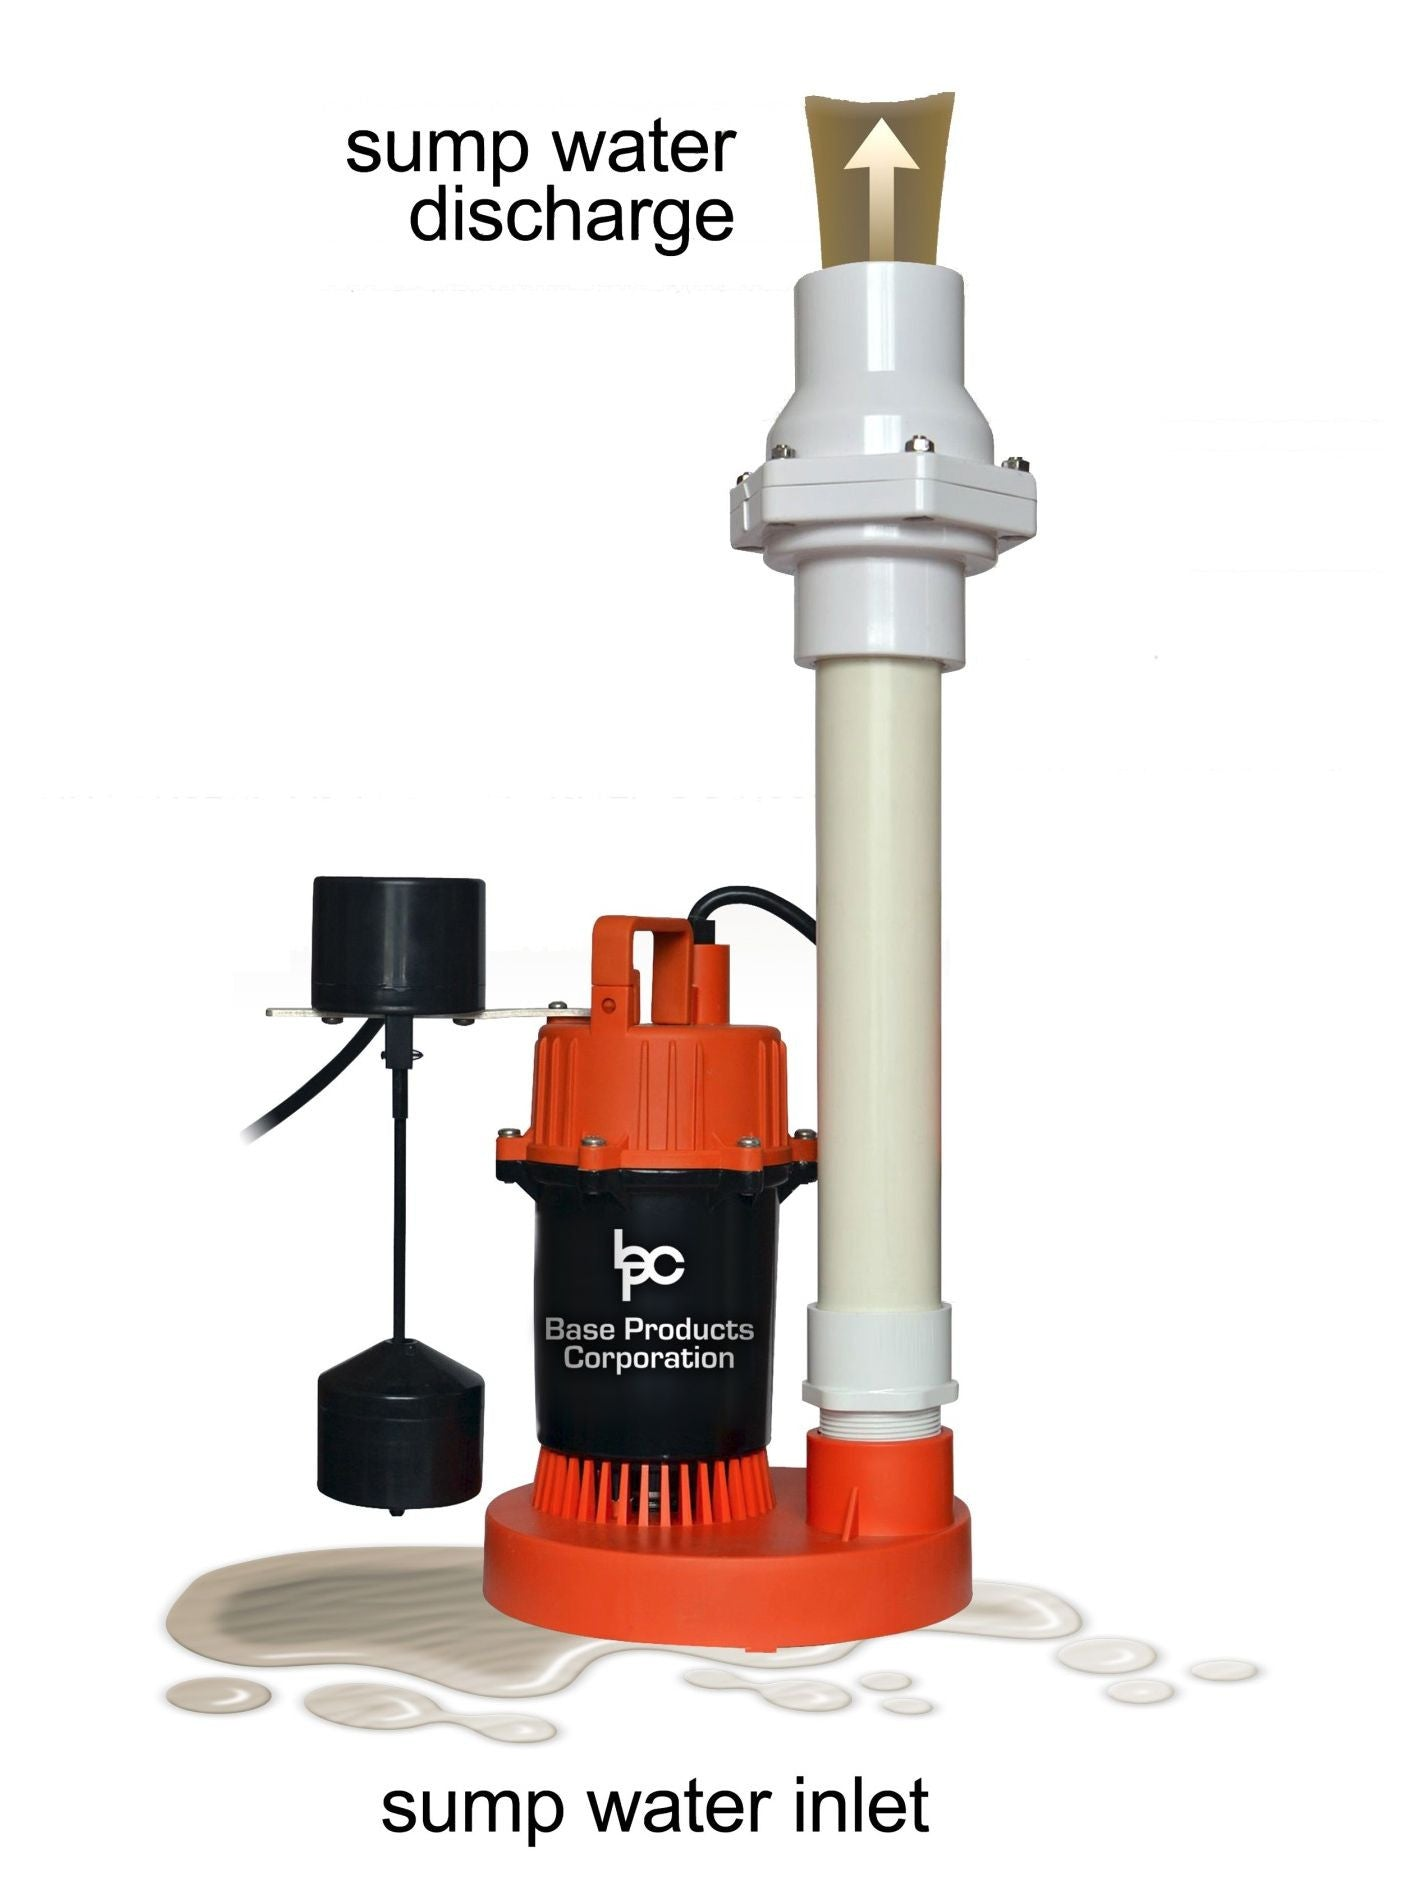 Base Products Sp3000 Primary Sump Pump